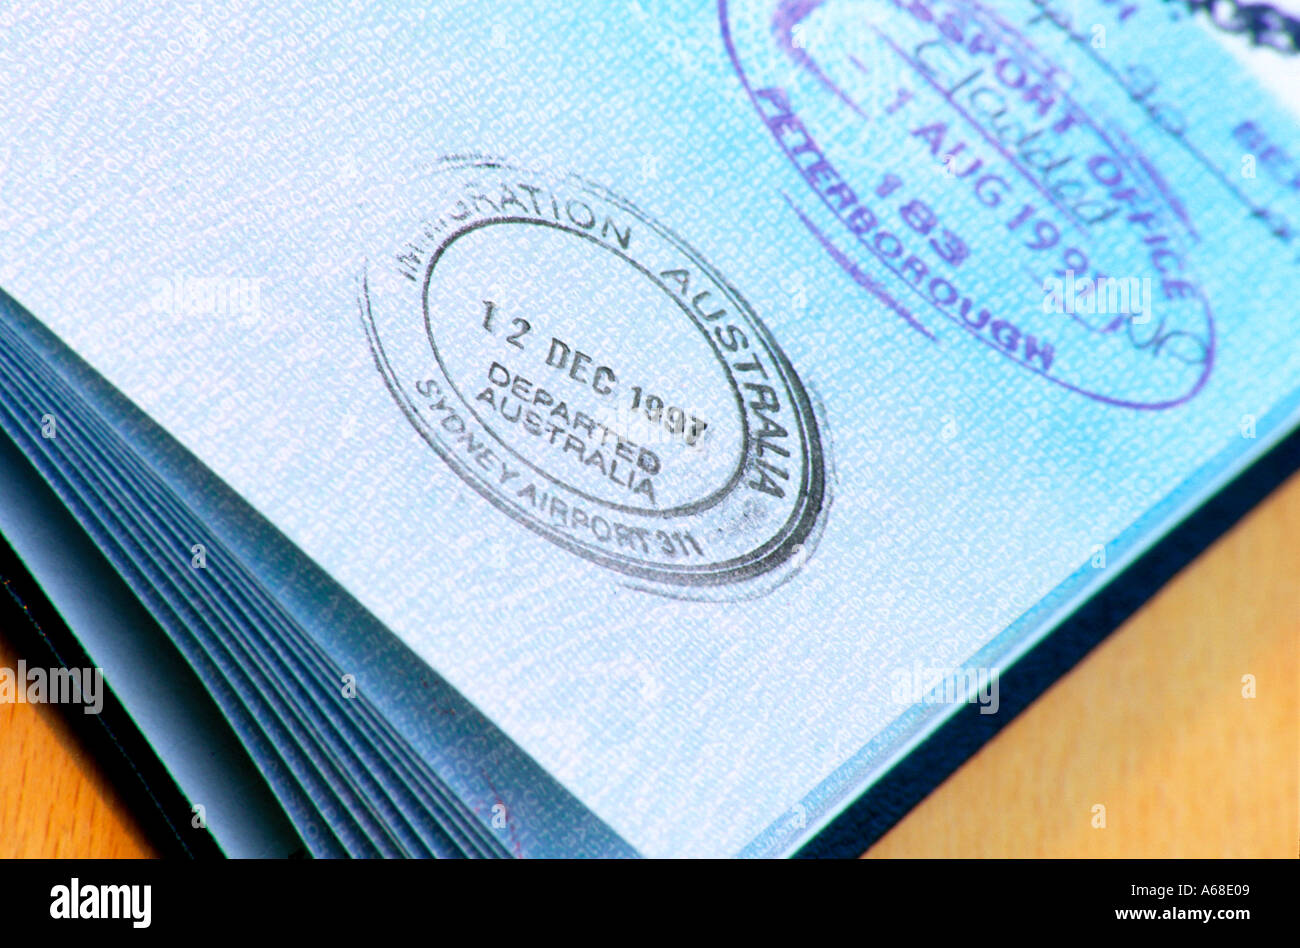 A British UK Passport With Australian Exit Stamp Open On Page Showing Immigration Control